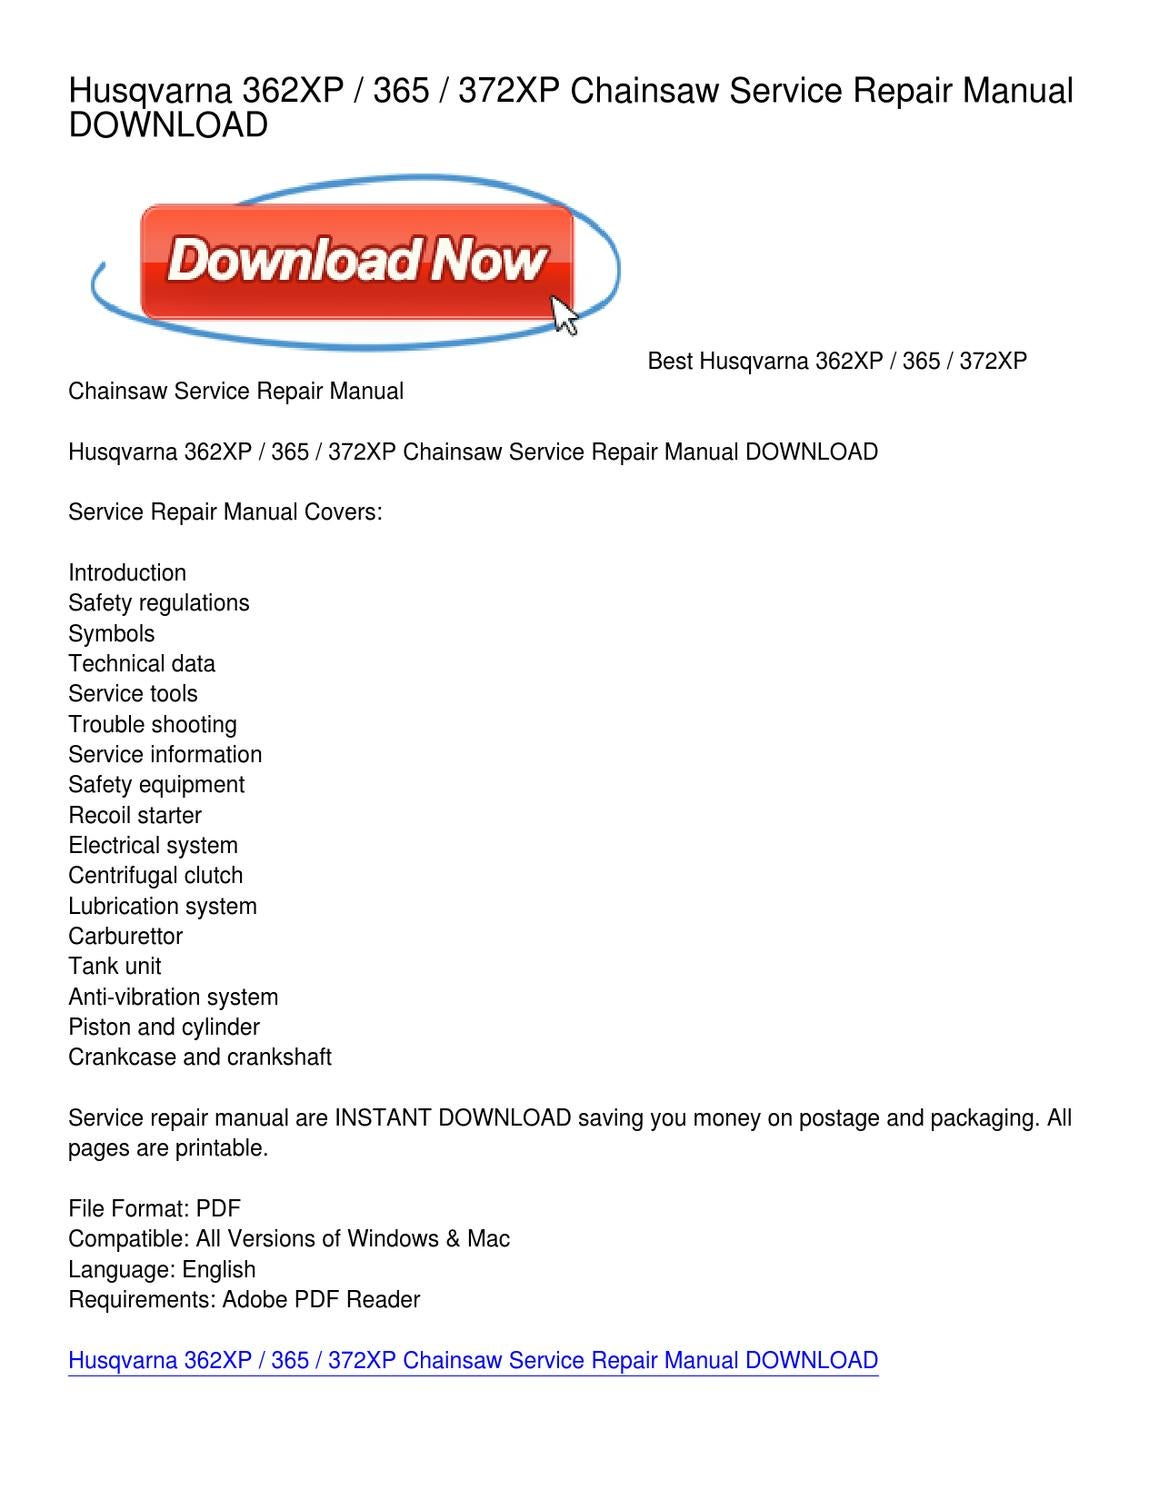 Husqvarna 362XP _ 365 _ 372XP Chainsaw Service Repair Manual DOWNLOAD by  Phyllis Vasquez - issuu